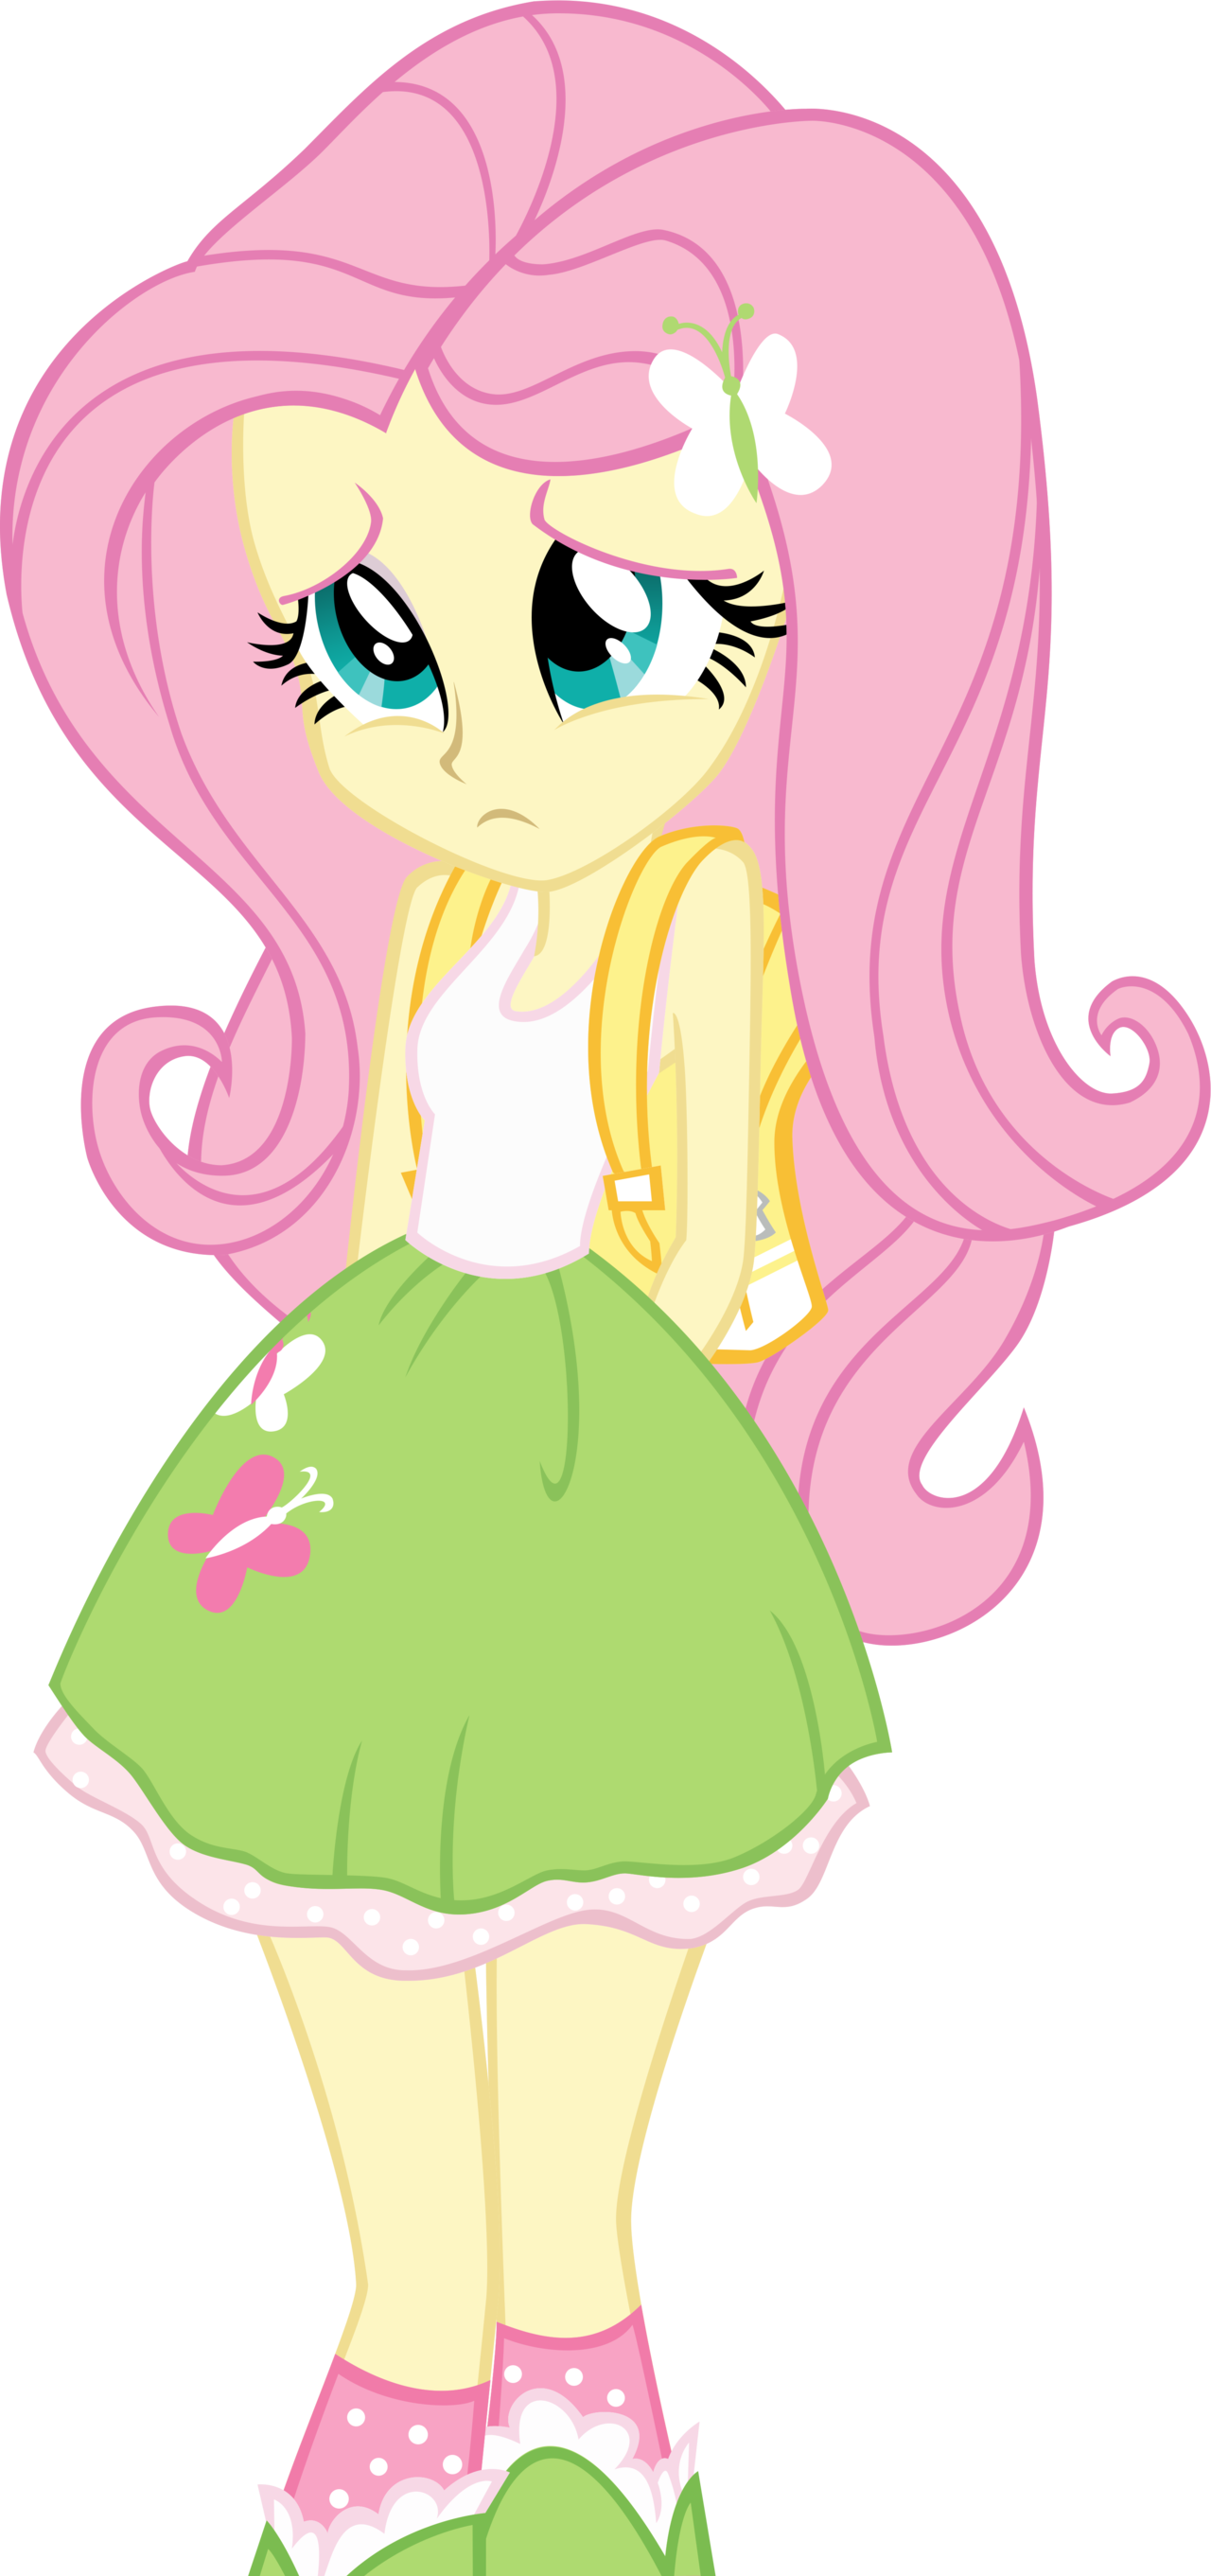 Equestria girls scolded fluttershy. Shy clipart adorable girl